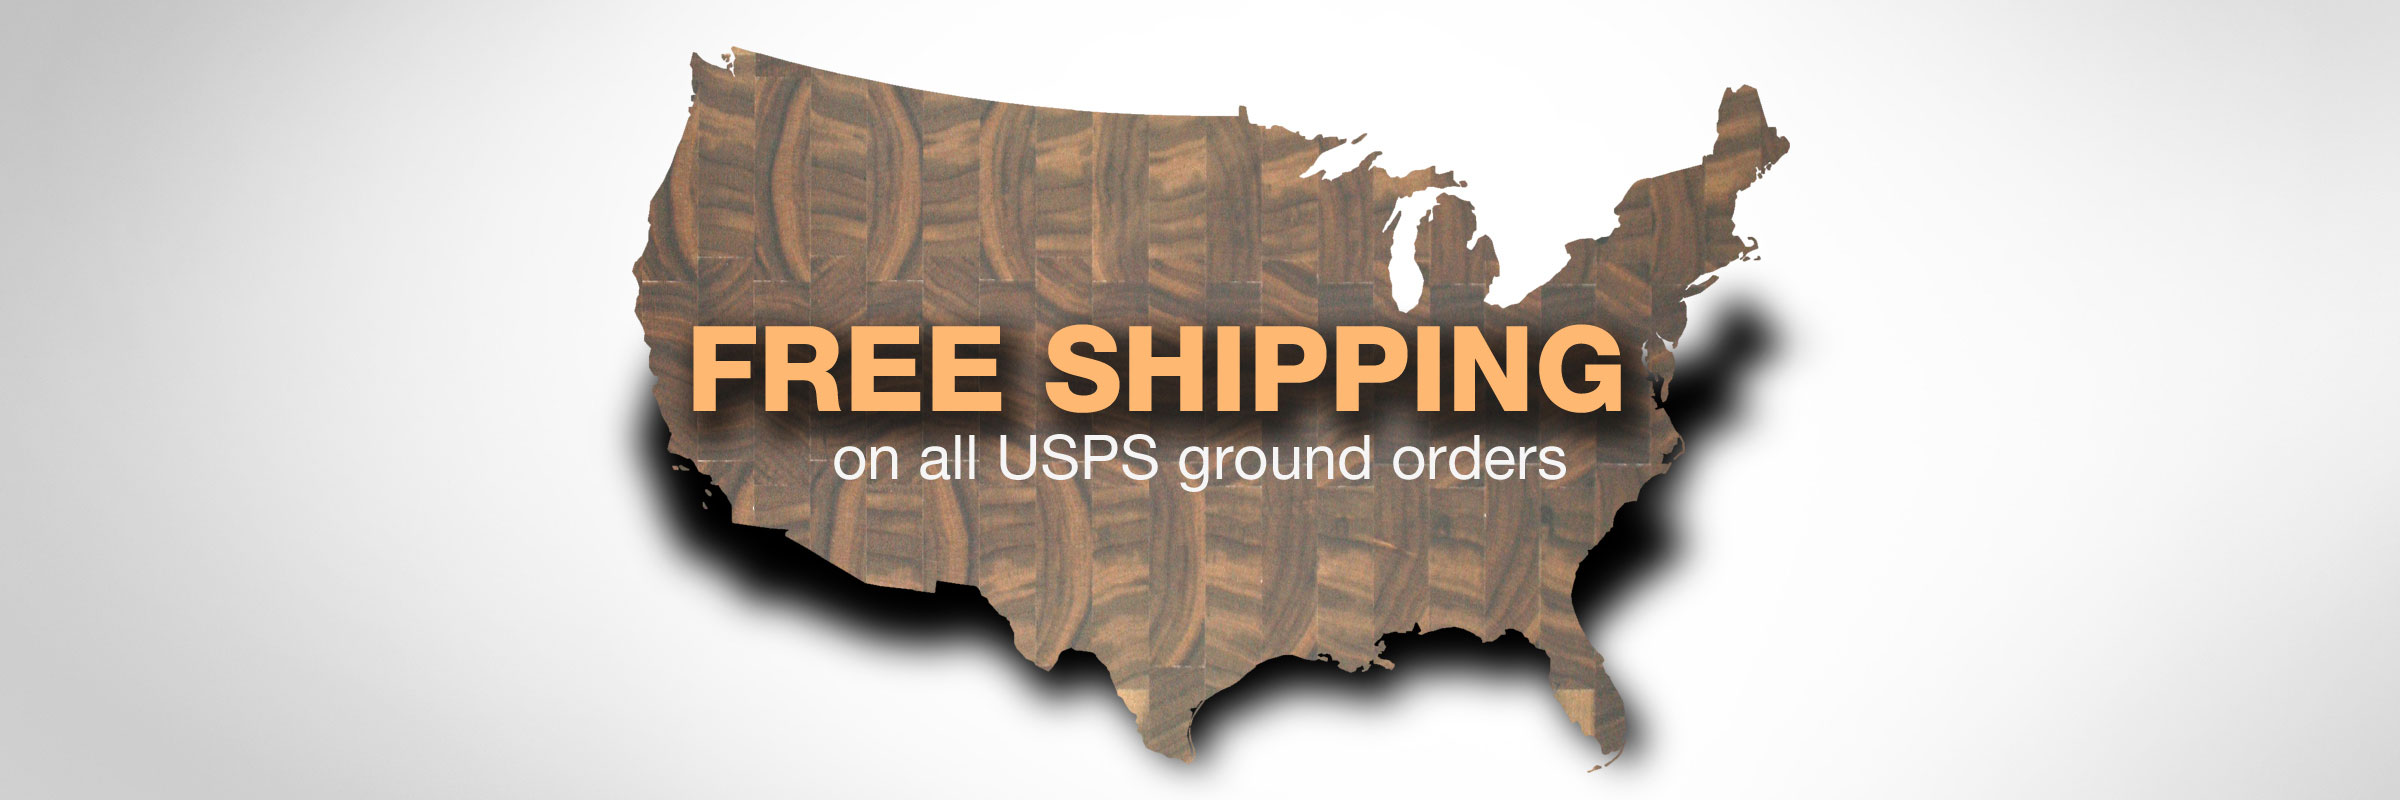 Free Shipping on All USPS Ground Orders